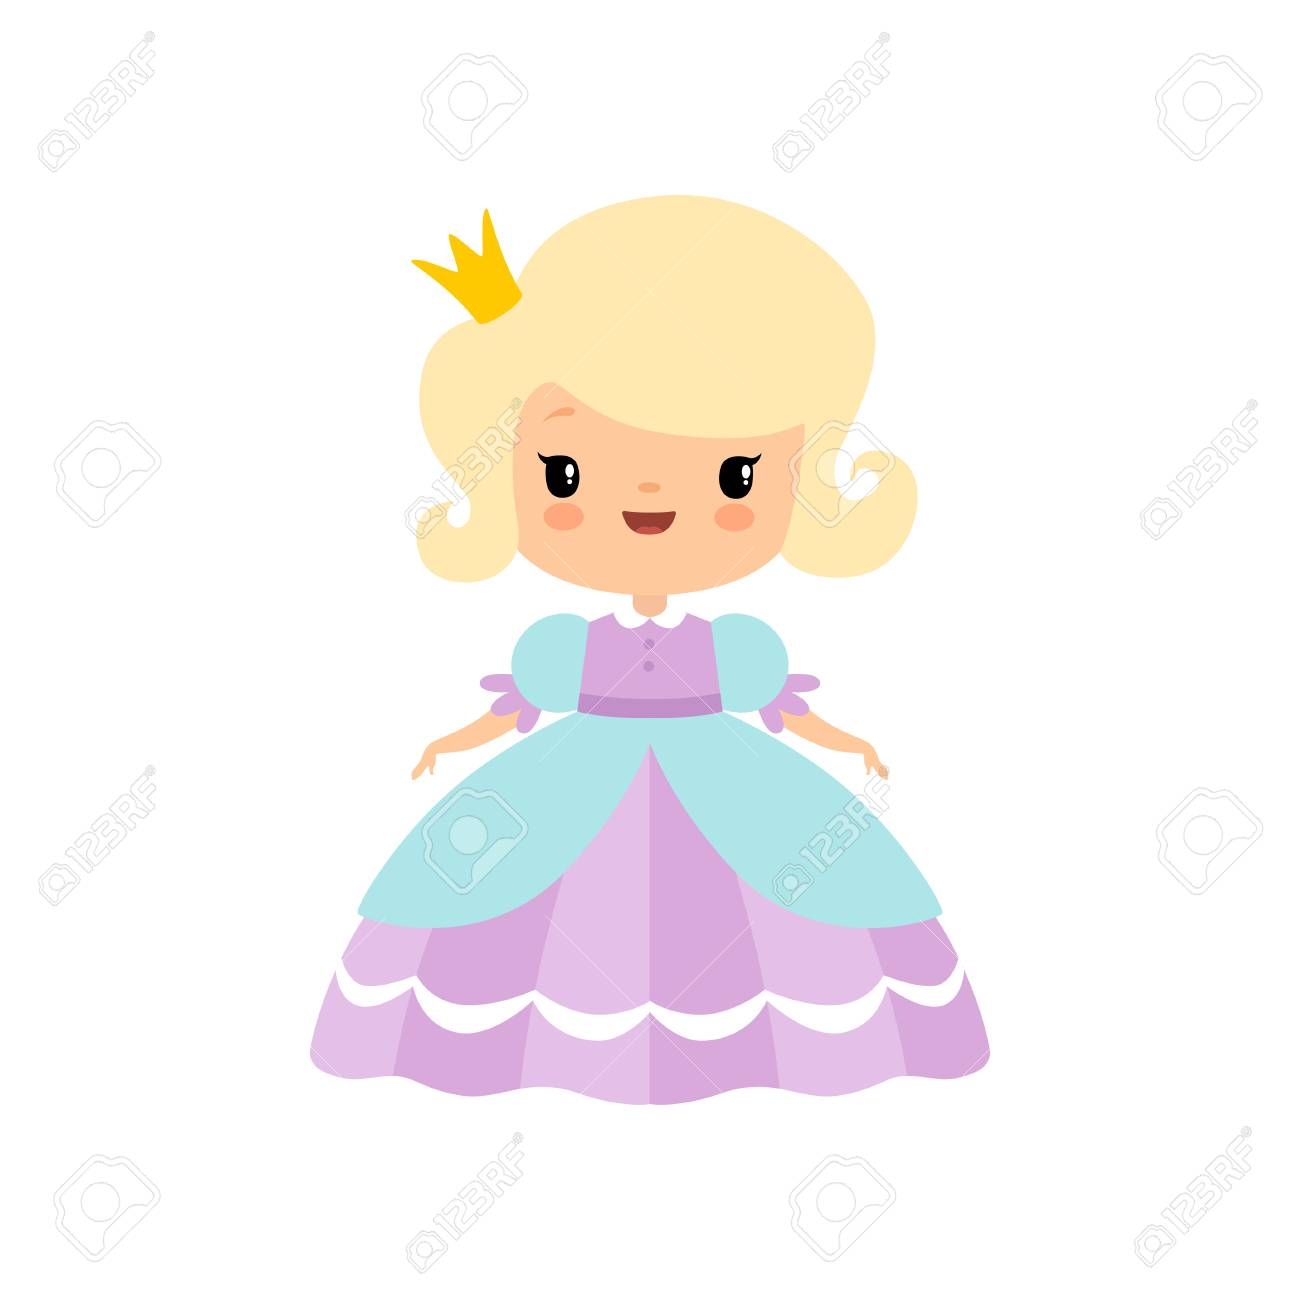 Cute Blonde Little Fairytale Princess in Beautiful Dress Cartoon..